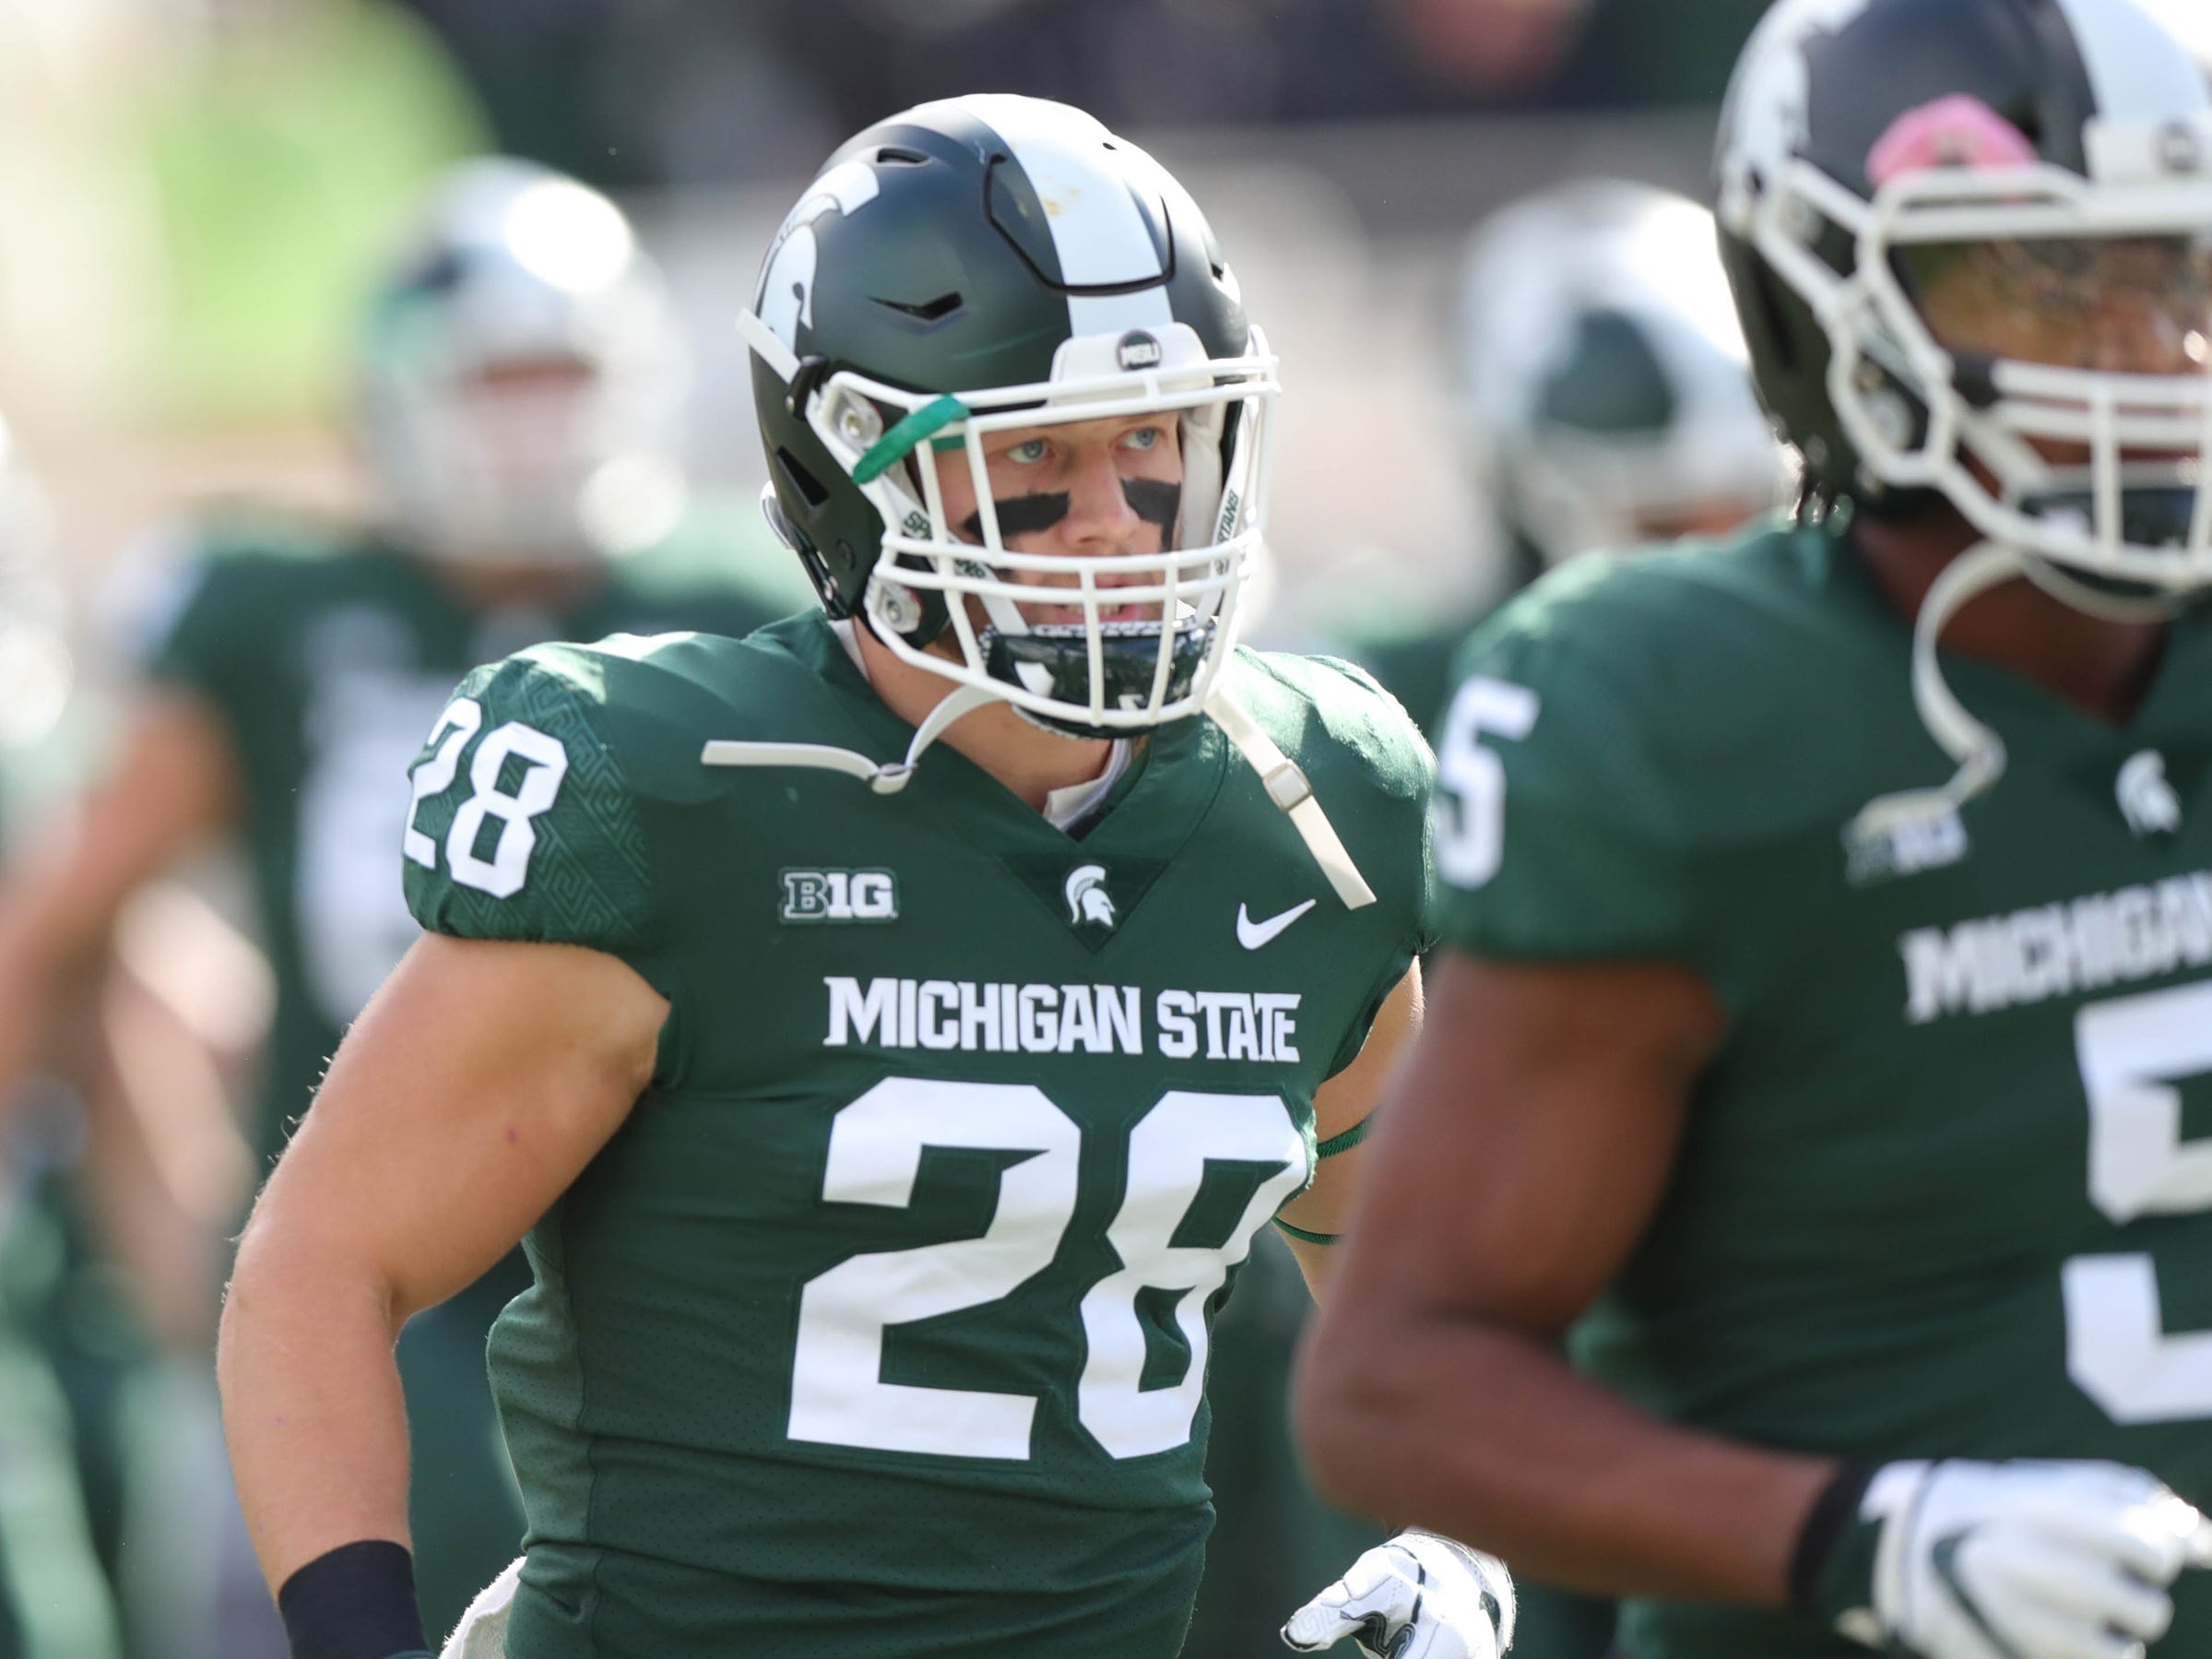 Michigan State's Jon Reschke warms up  before action against Michigan  on Saturday, Oct. 20, 2018, at Spartan Stadium in East Lansing, Mich.